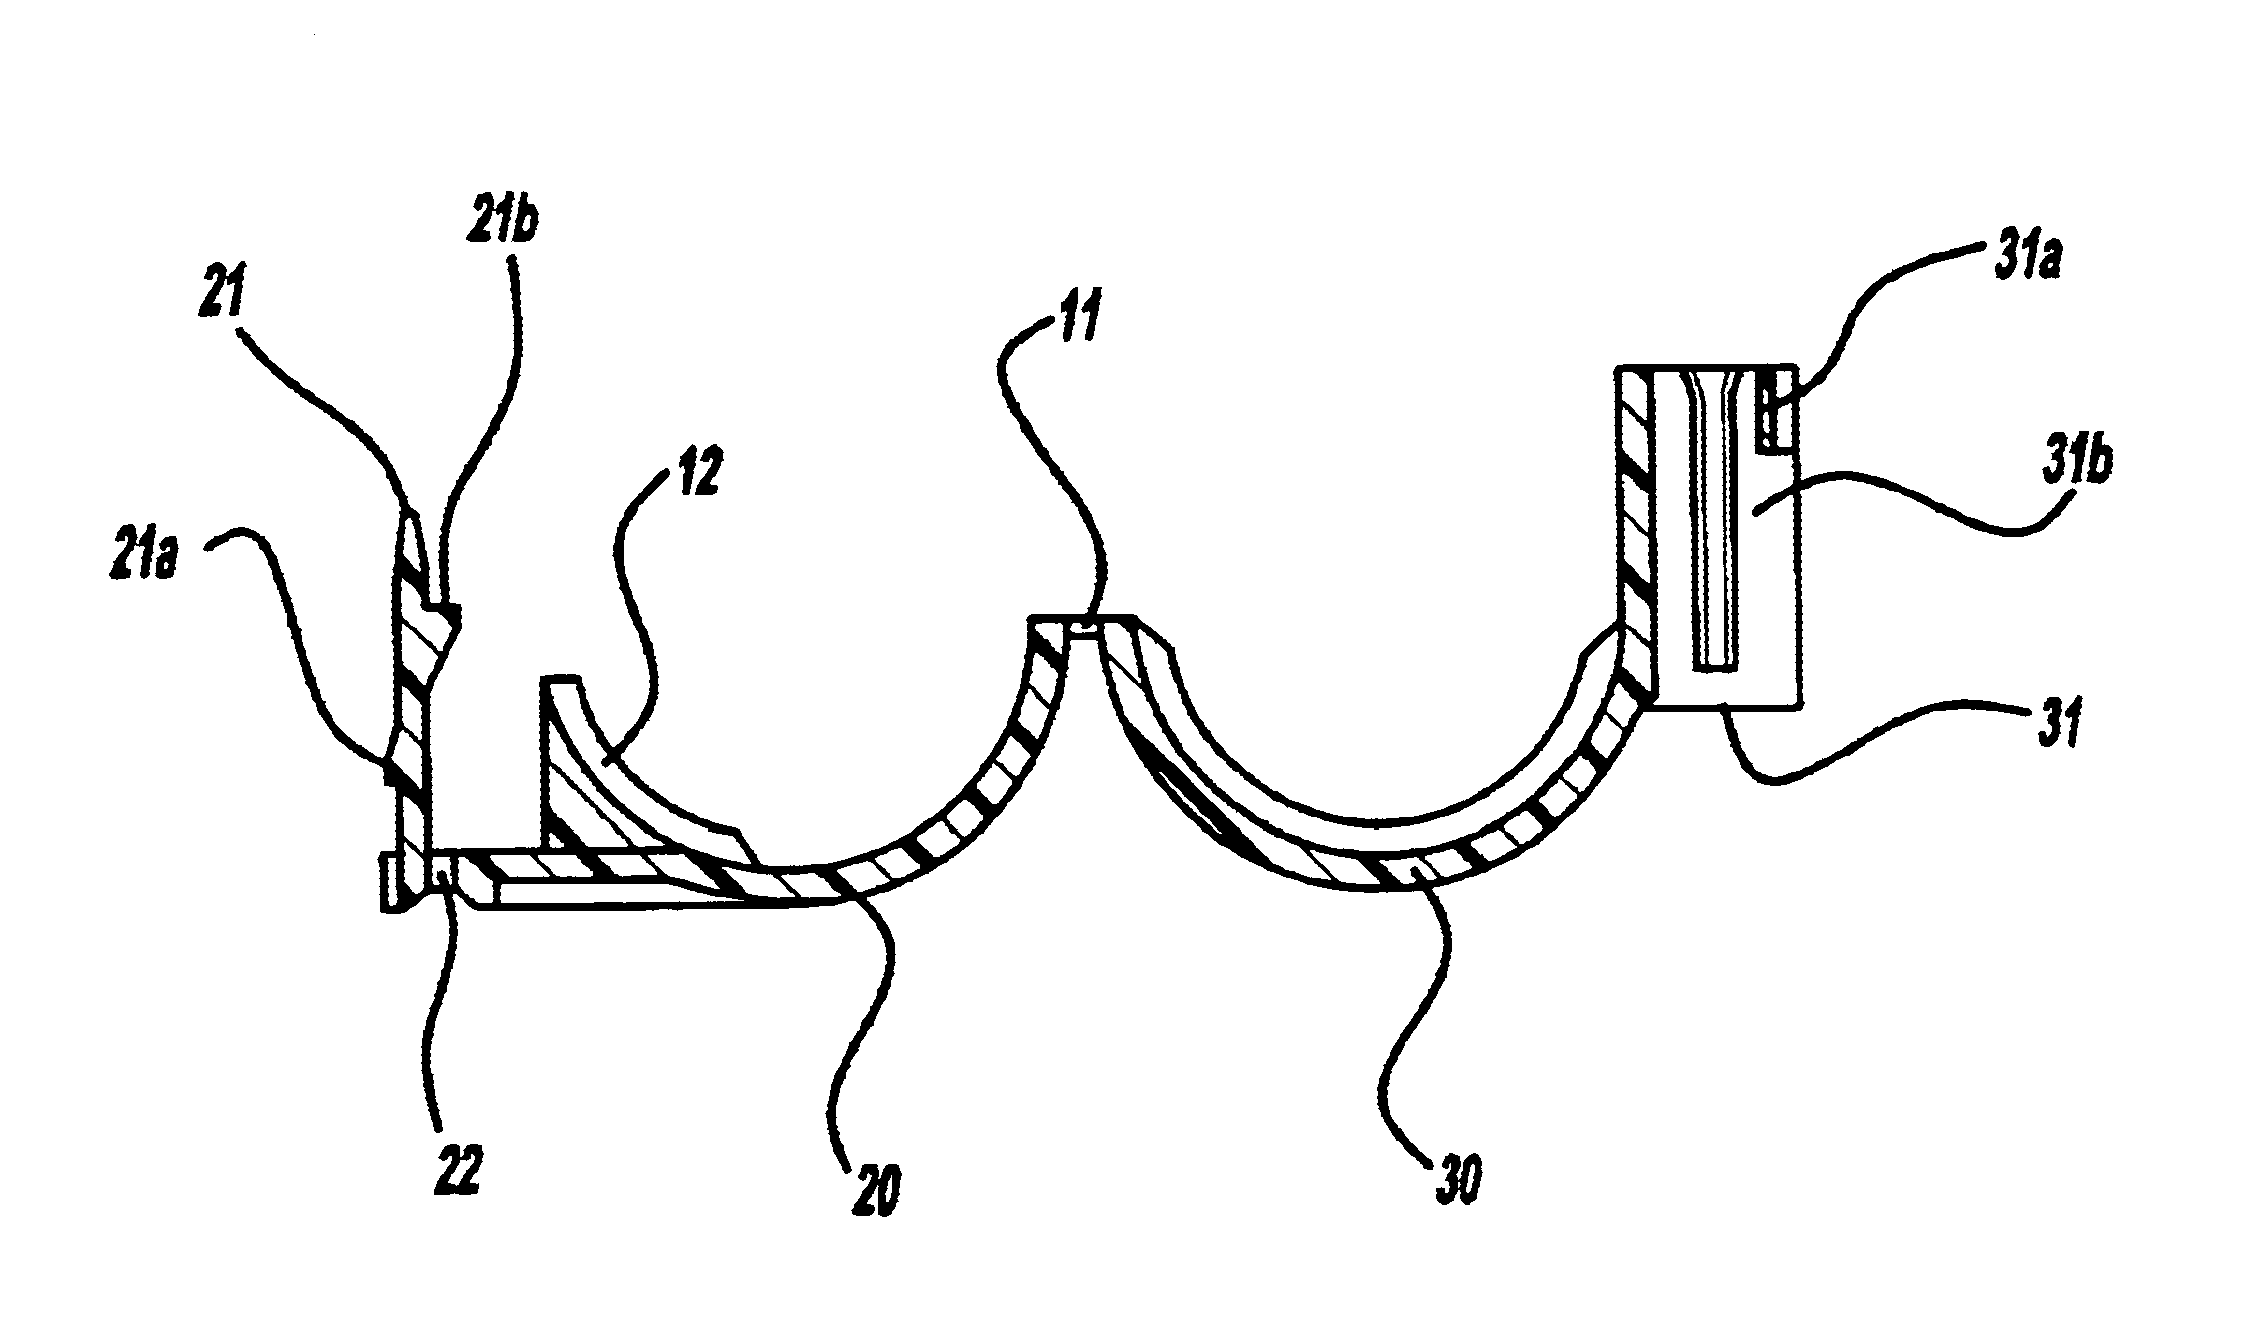 Patente Us6682026 Clamp For Wire Harness Google Patentes Wiring Clamps Patent Drawing